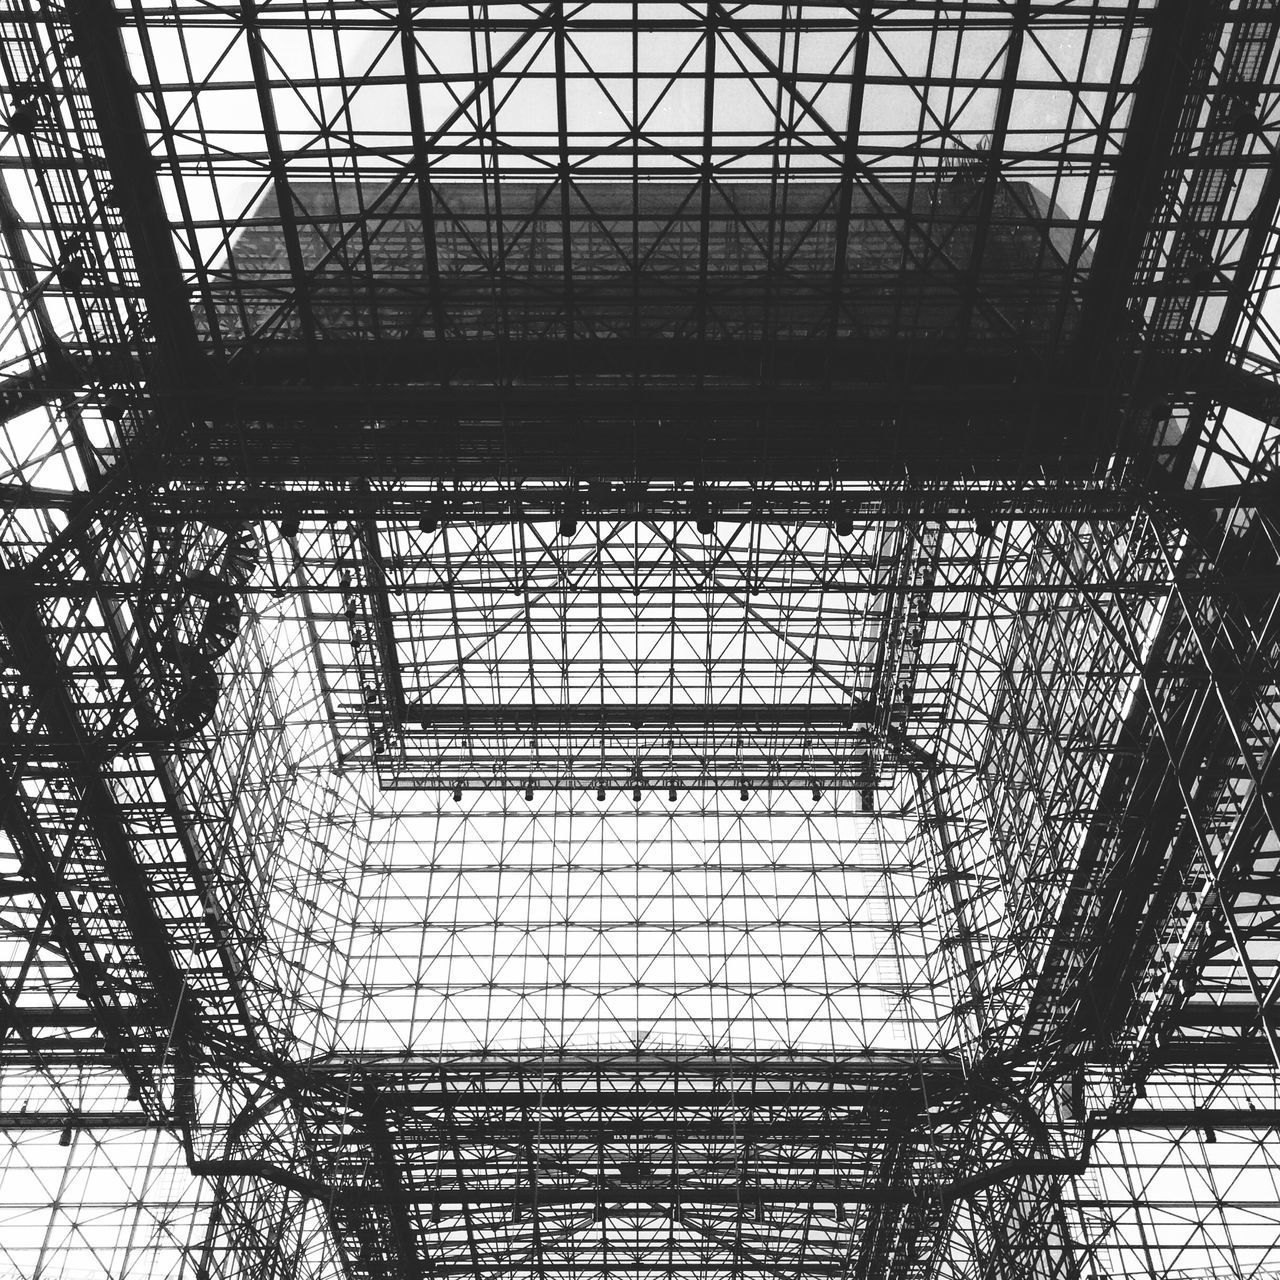 Javits Convention Center, New York City, USA. Photo by Tom Bland. Built Structure Architecture No People Metal Glass Roof Ceiling Looking Up IPhone IPhoneography Javits Center NYC New York City New York Lines Black And White Monochrome Architectural Glass Ceiling Graphic Convention Center